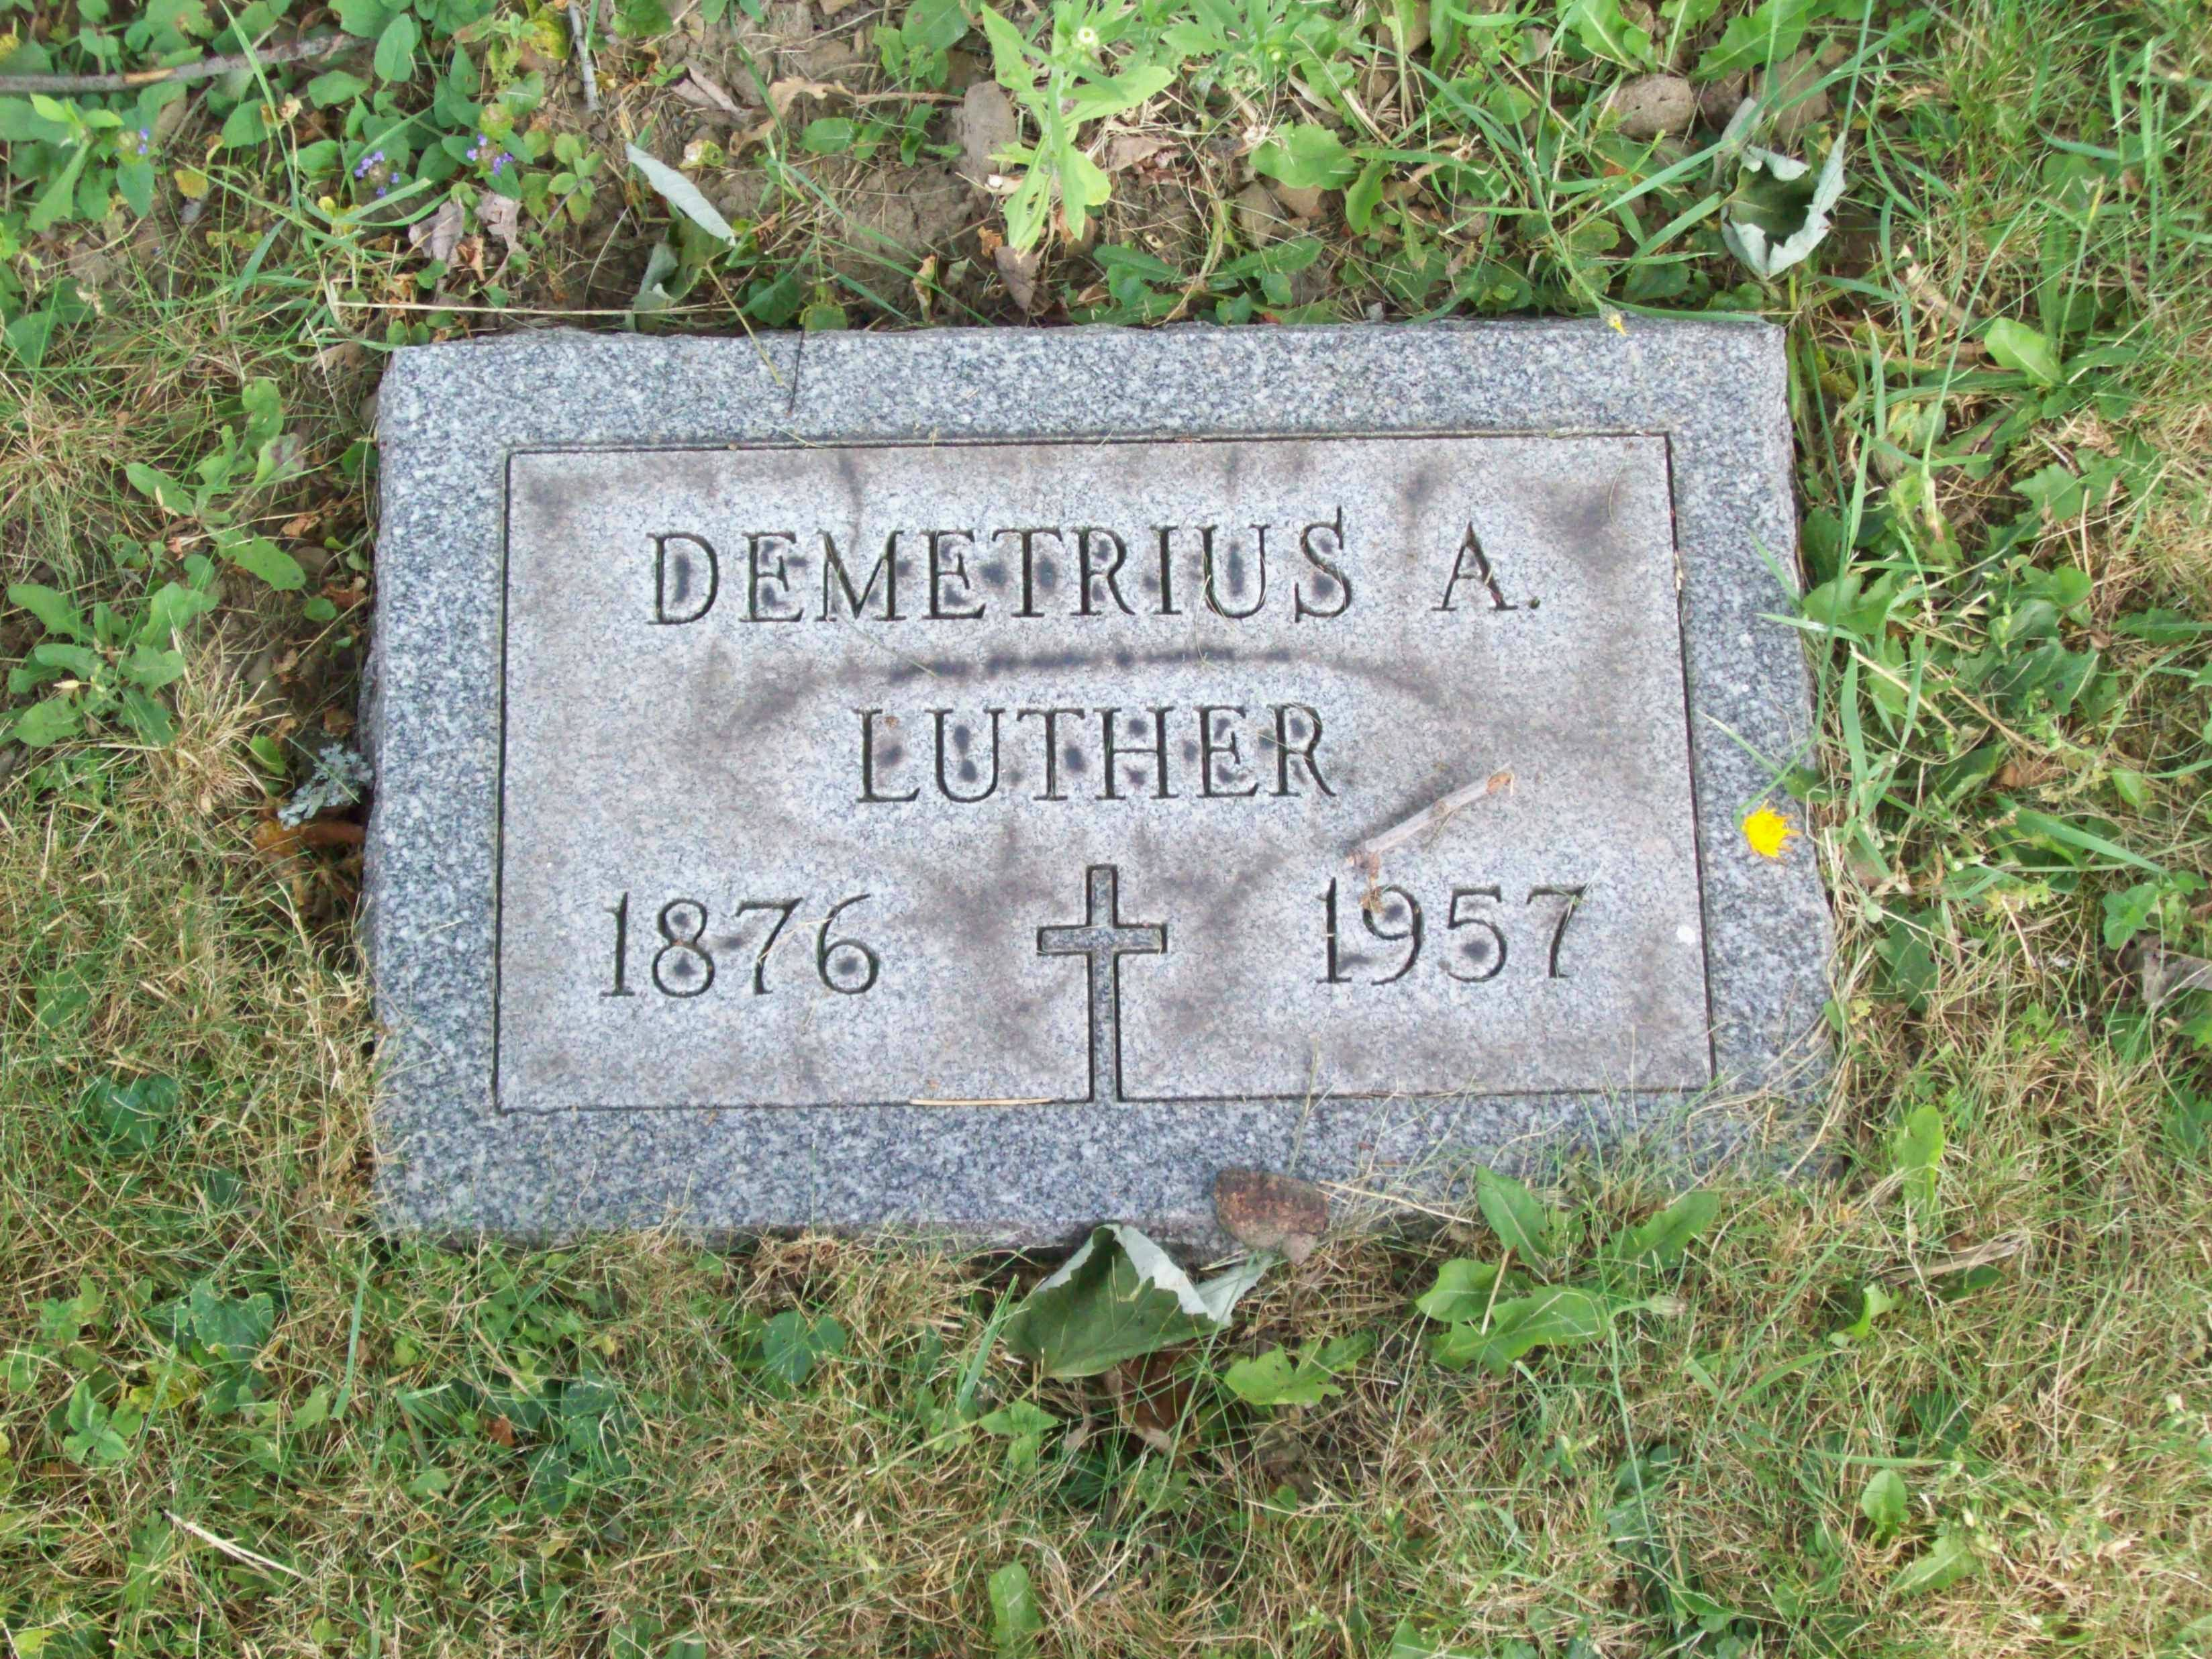 Demetrius A. Luther